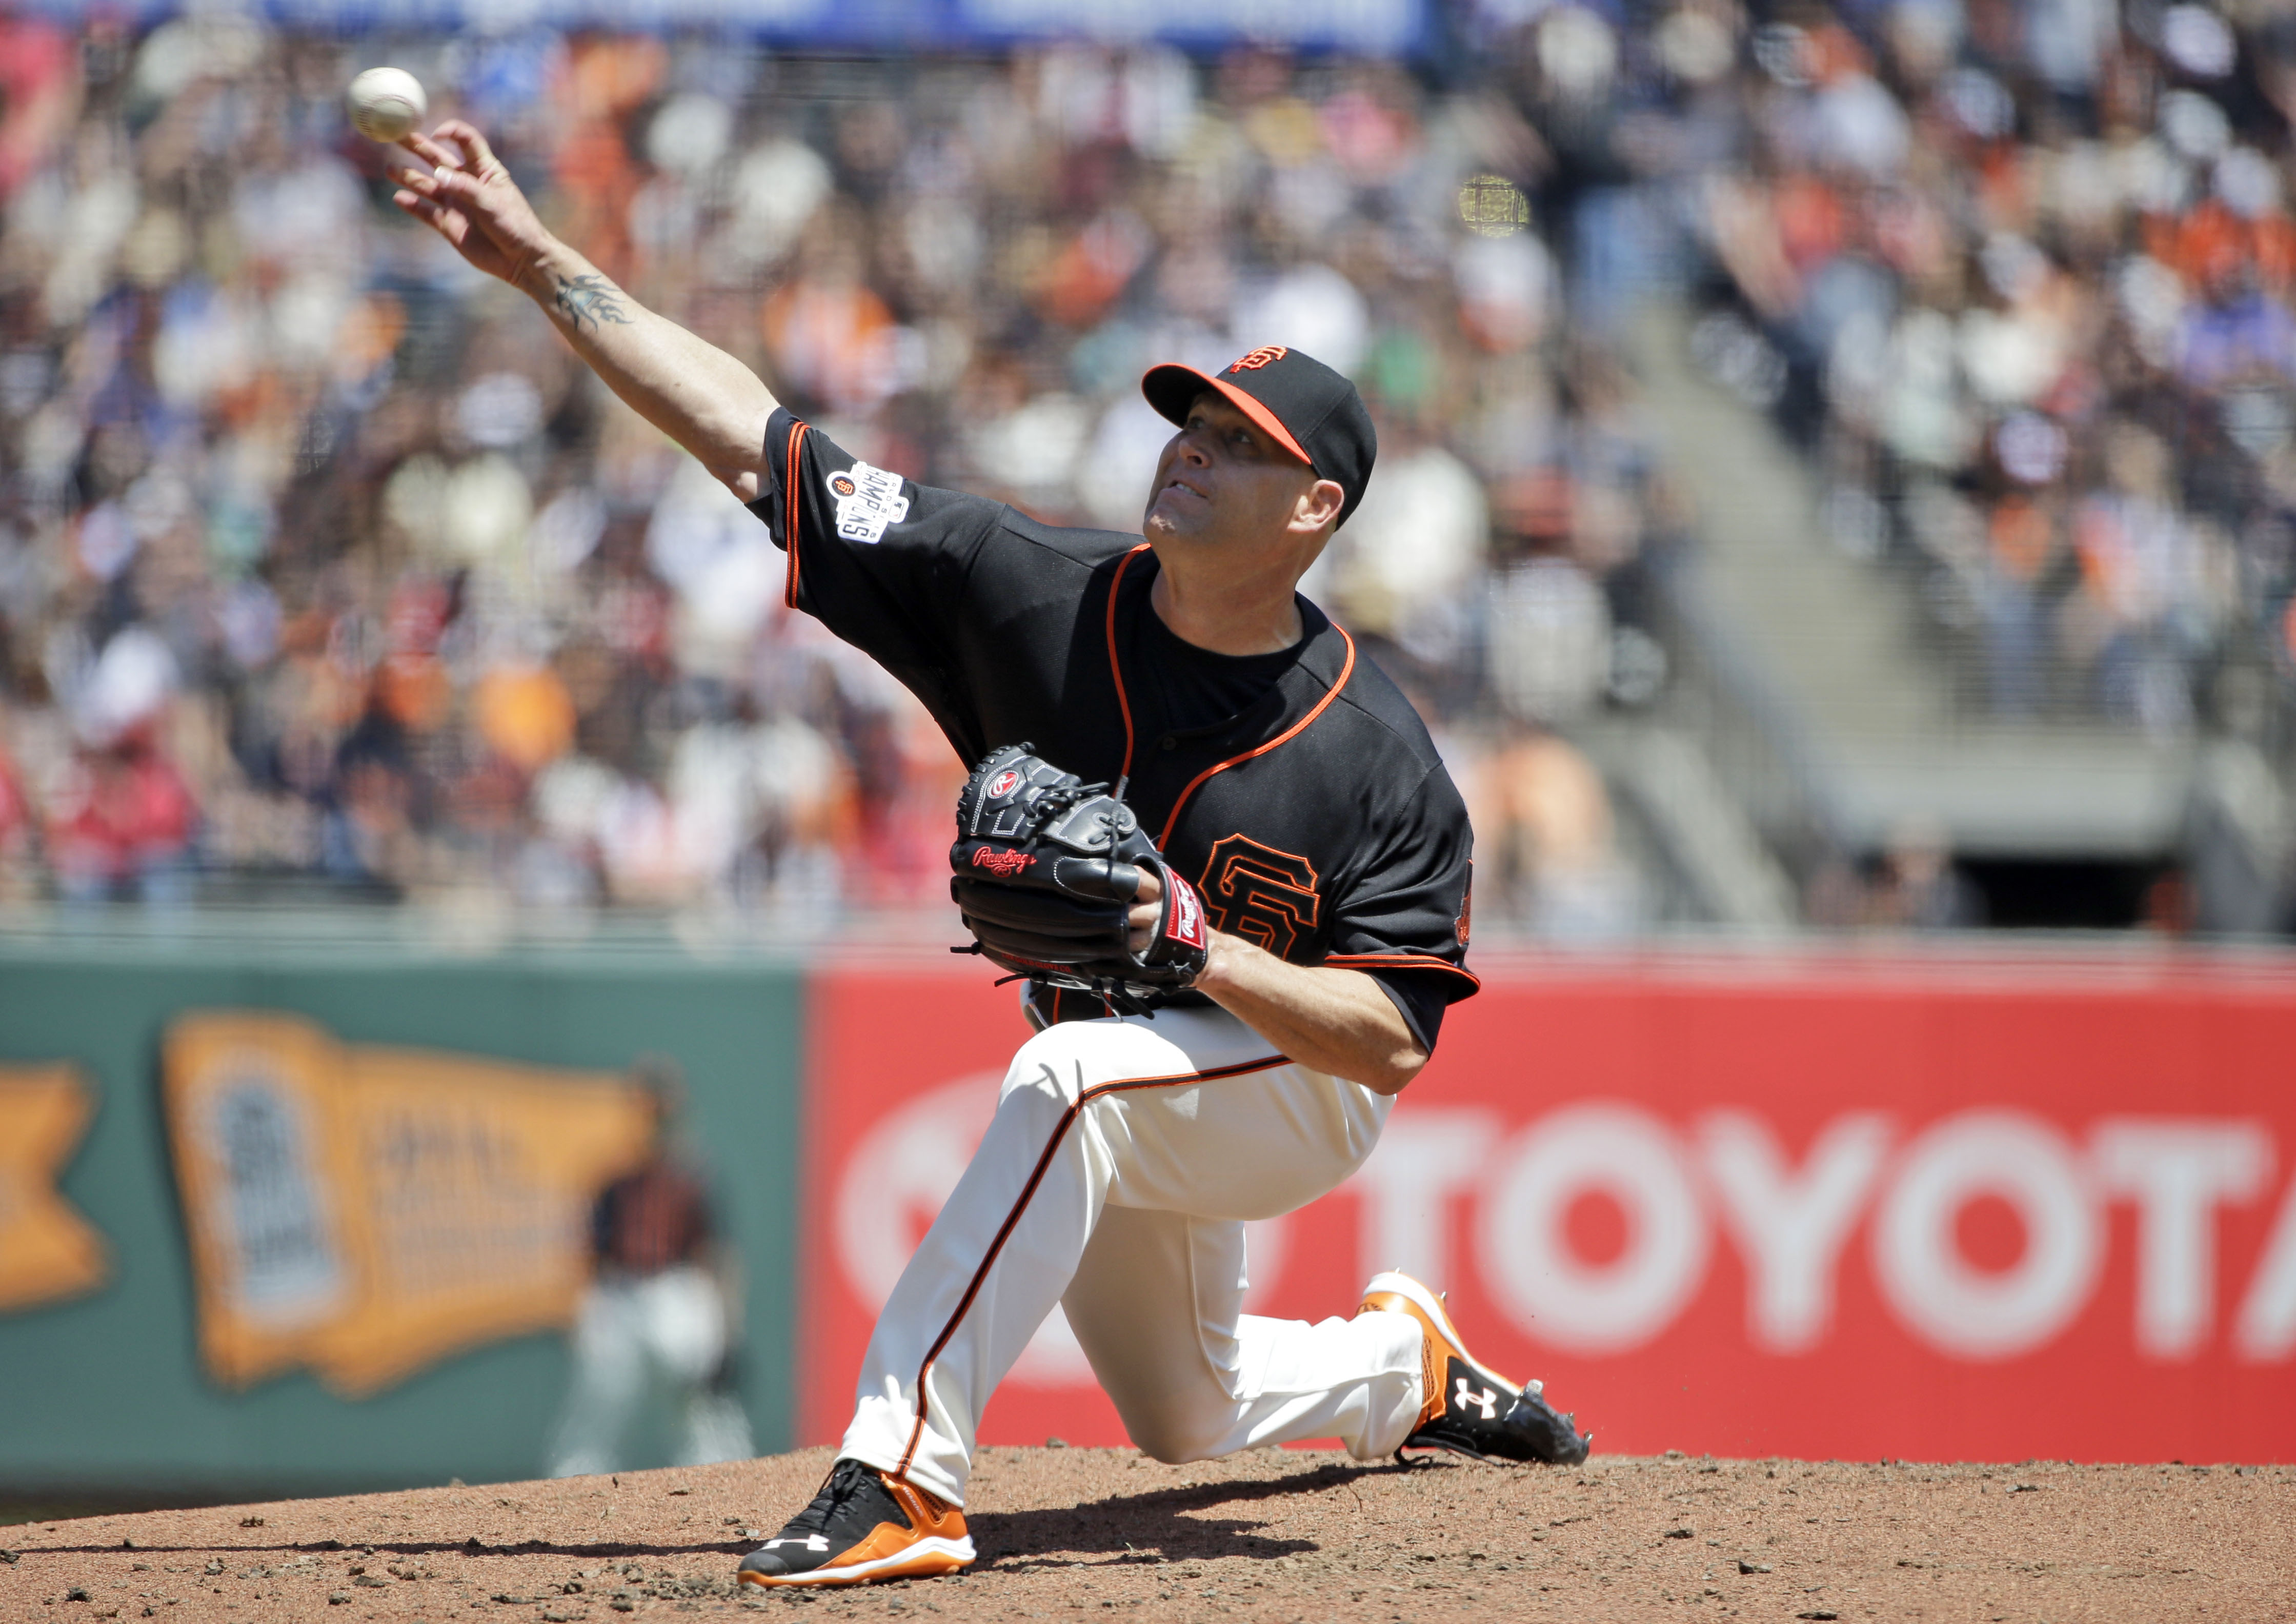 San Francisco Giants starting pitcher Tim Hudson throws to the Los Angeles Angels during the second inning of a baseball game on Saturday, May 2, 2015, in San Francisco. (AP Photo/Marcio Jose Sanchez)